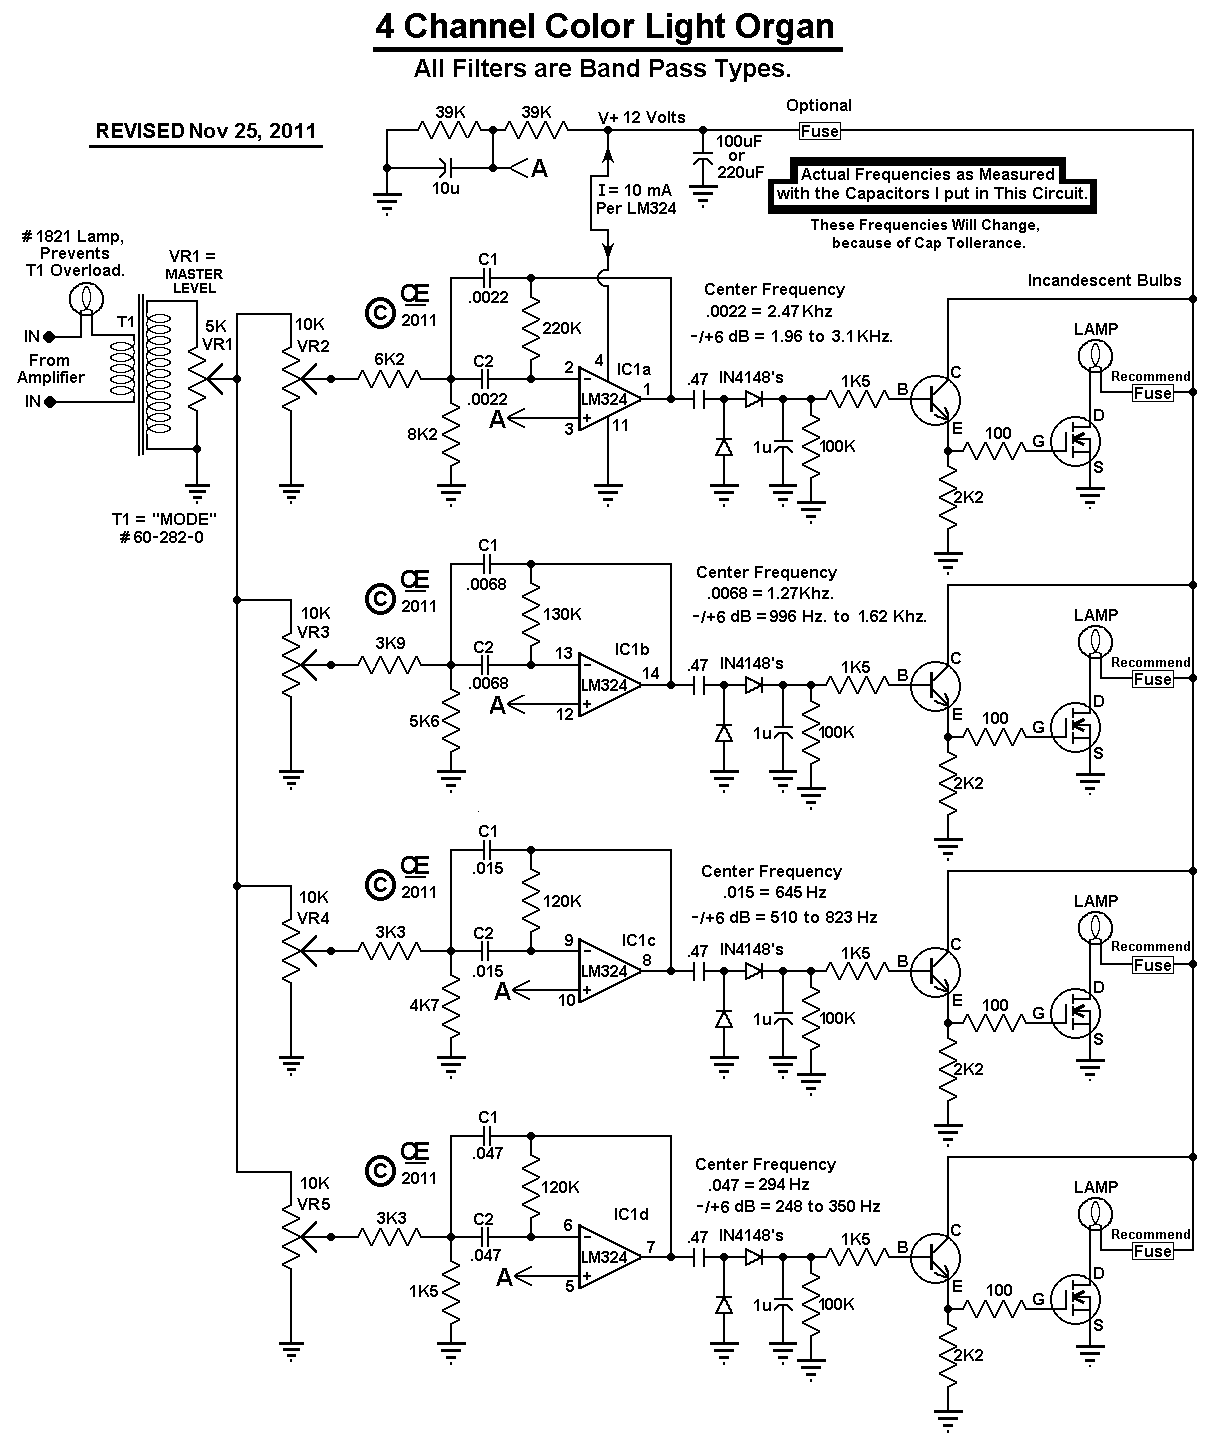 Channel Color Organ Schematic For Nmosfet Wiring Diagram Online Yaesu G 1000dxc Circuit 4 12 Volt Your Car